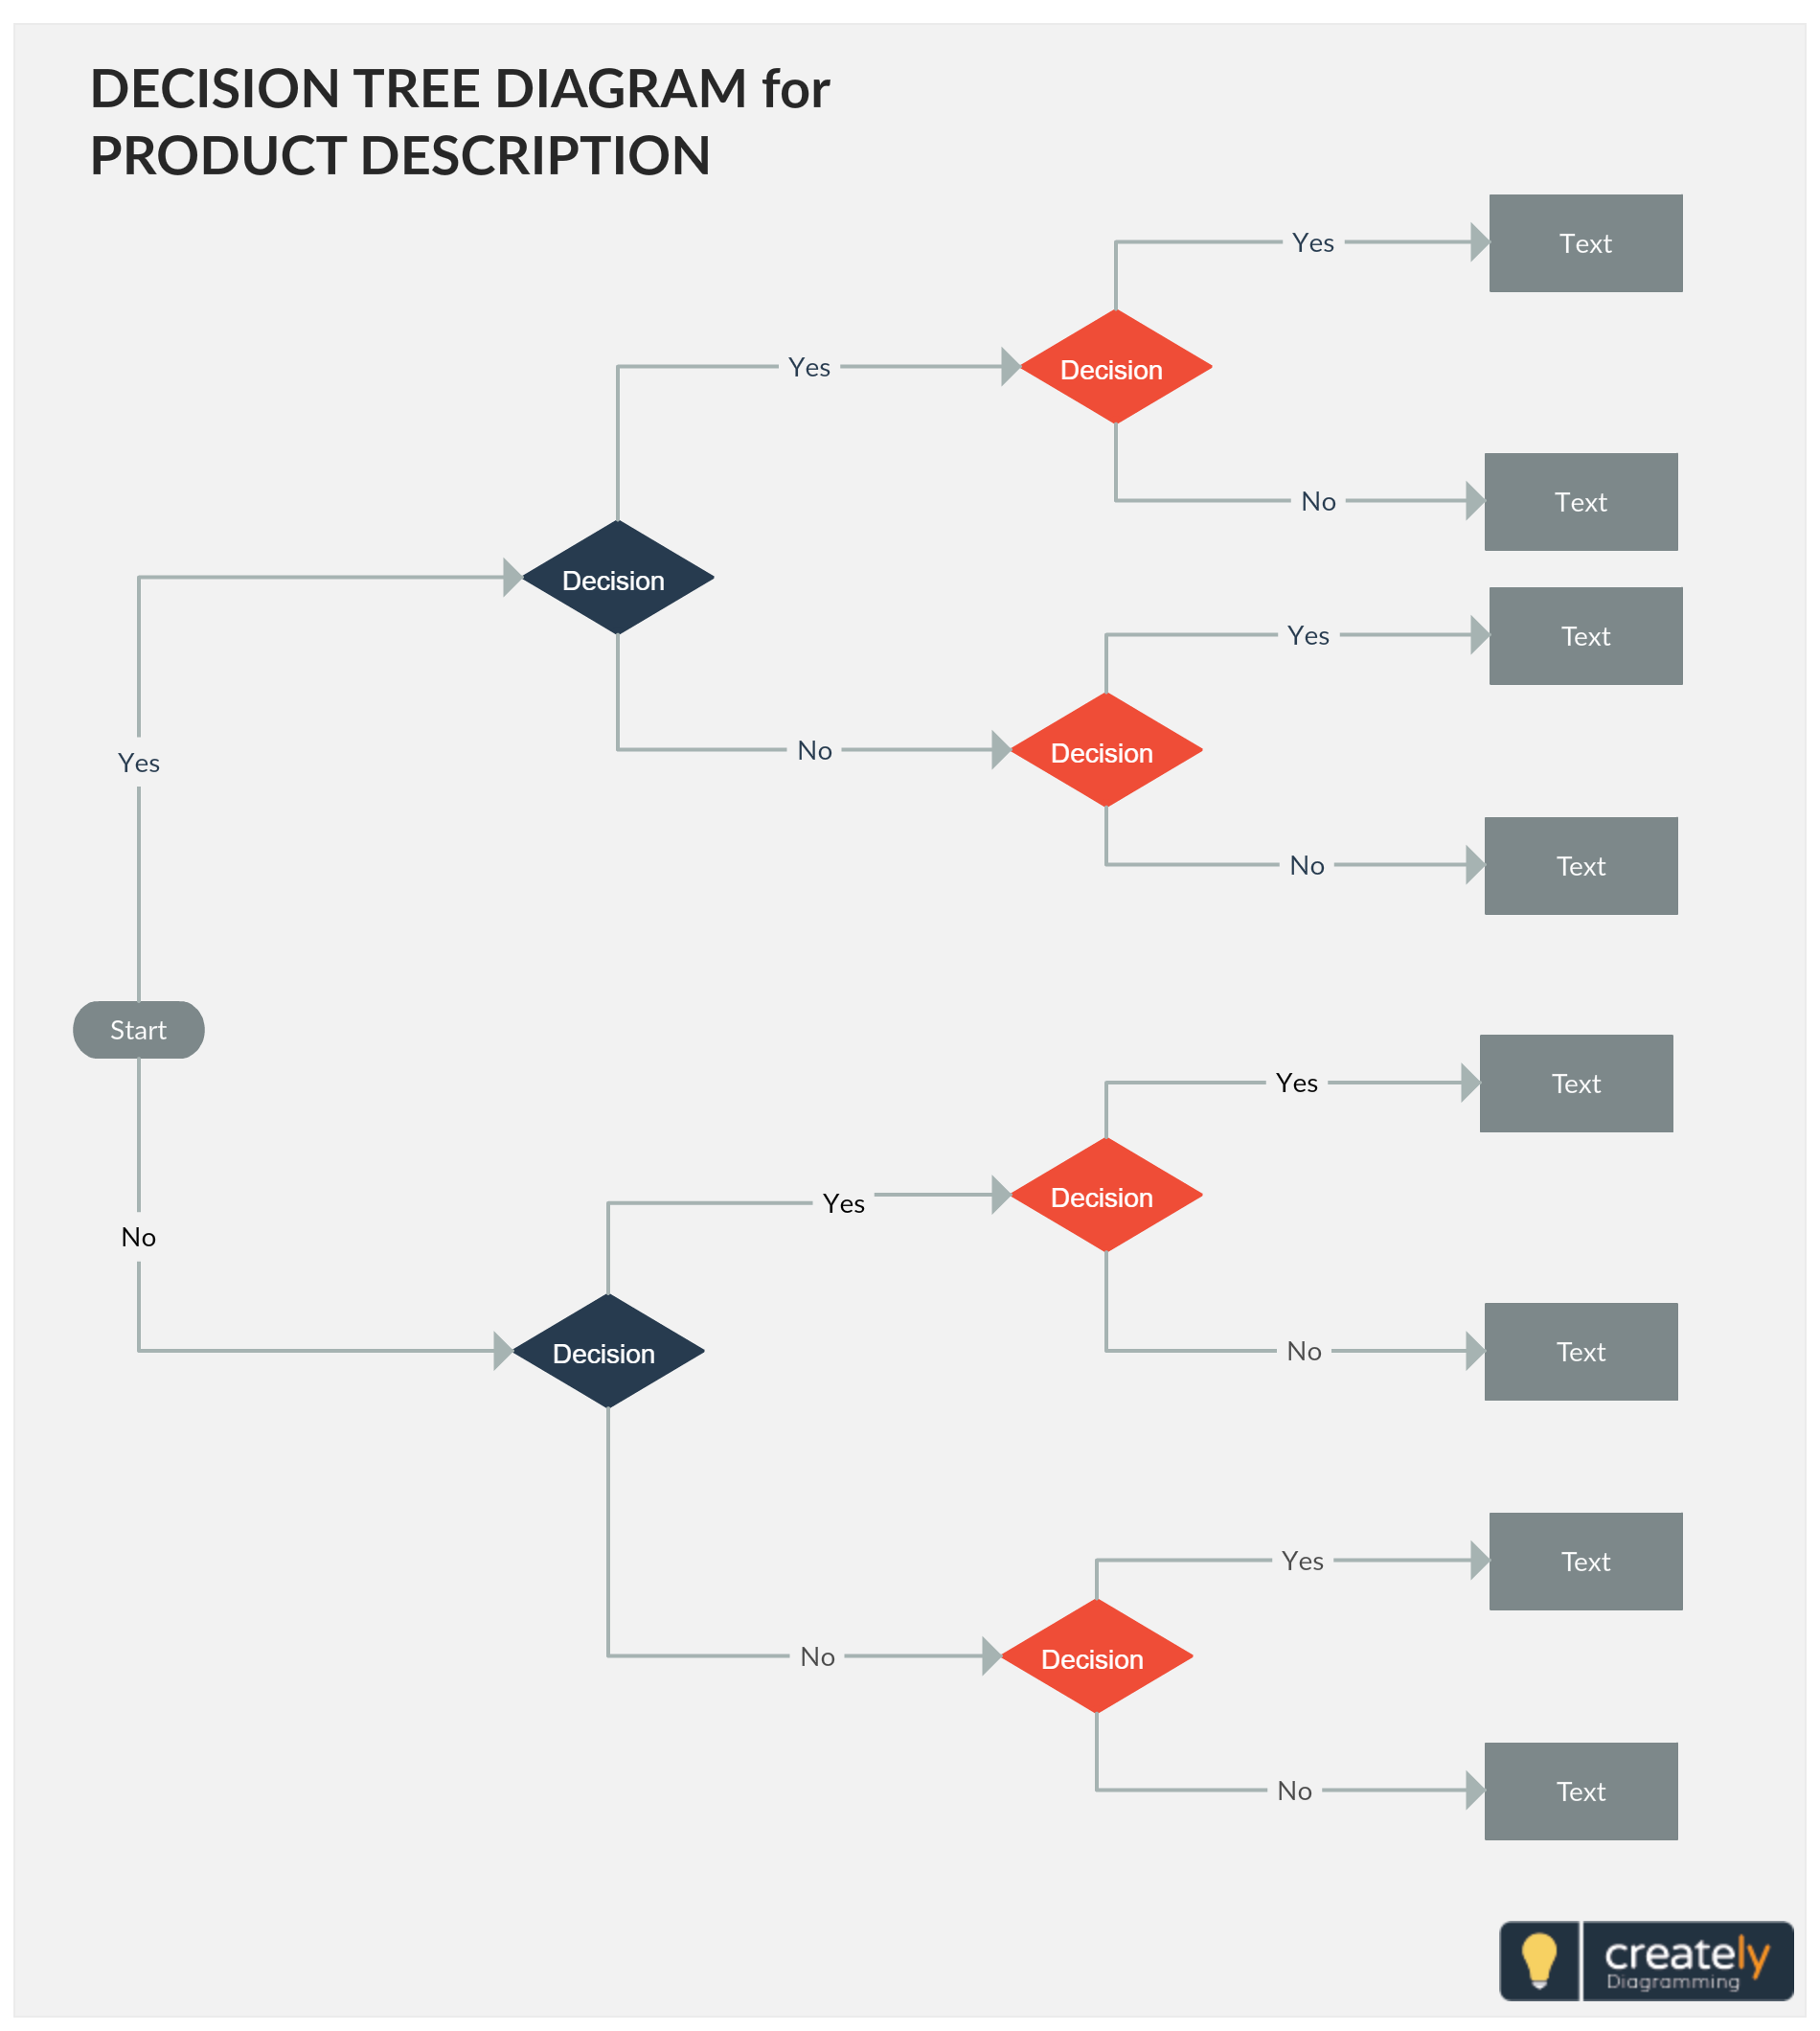 medium resolution of decision tree diagram template all sub elements are branching out from the key element or concept and can be used to illustrate the work progress of a